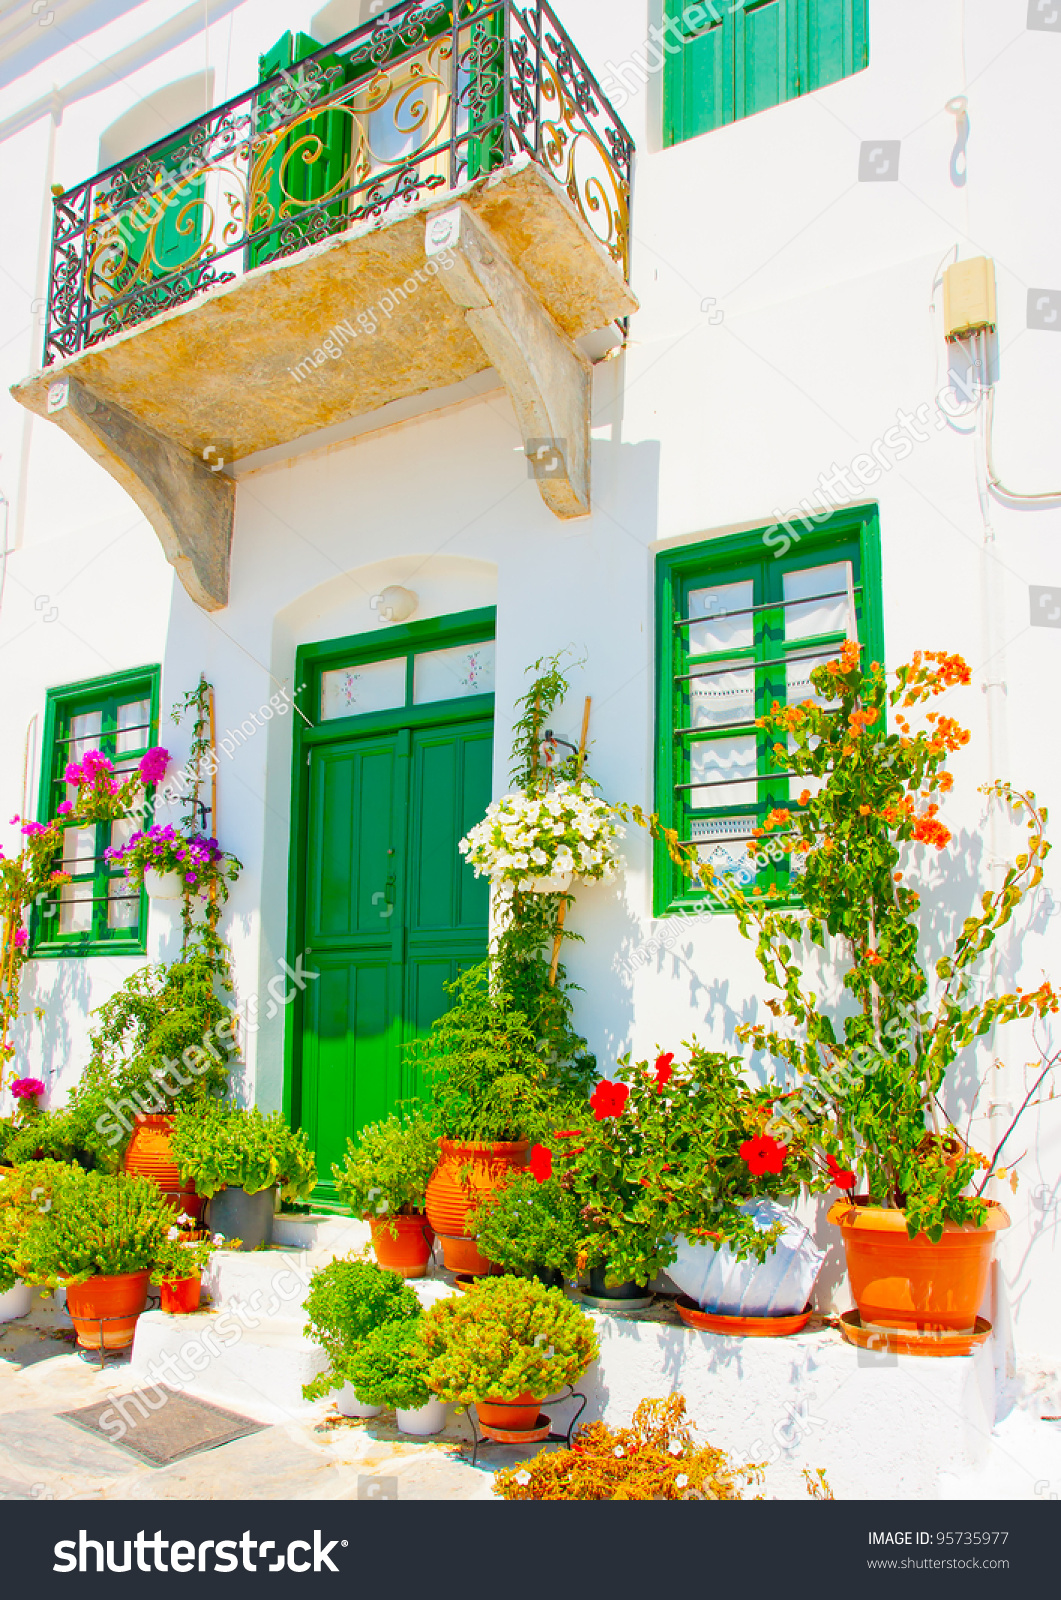 Old beautiful traditional house in chora the capital of amorgos island - Beautiful Old Traditional House With Wooden Green Colored Doors And Windows In Chora The Capital Of Preview Save To A Lightbox